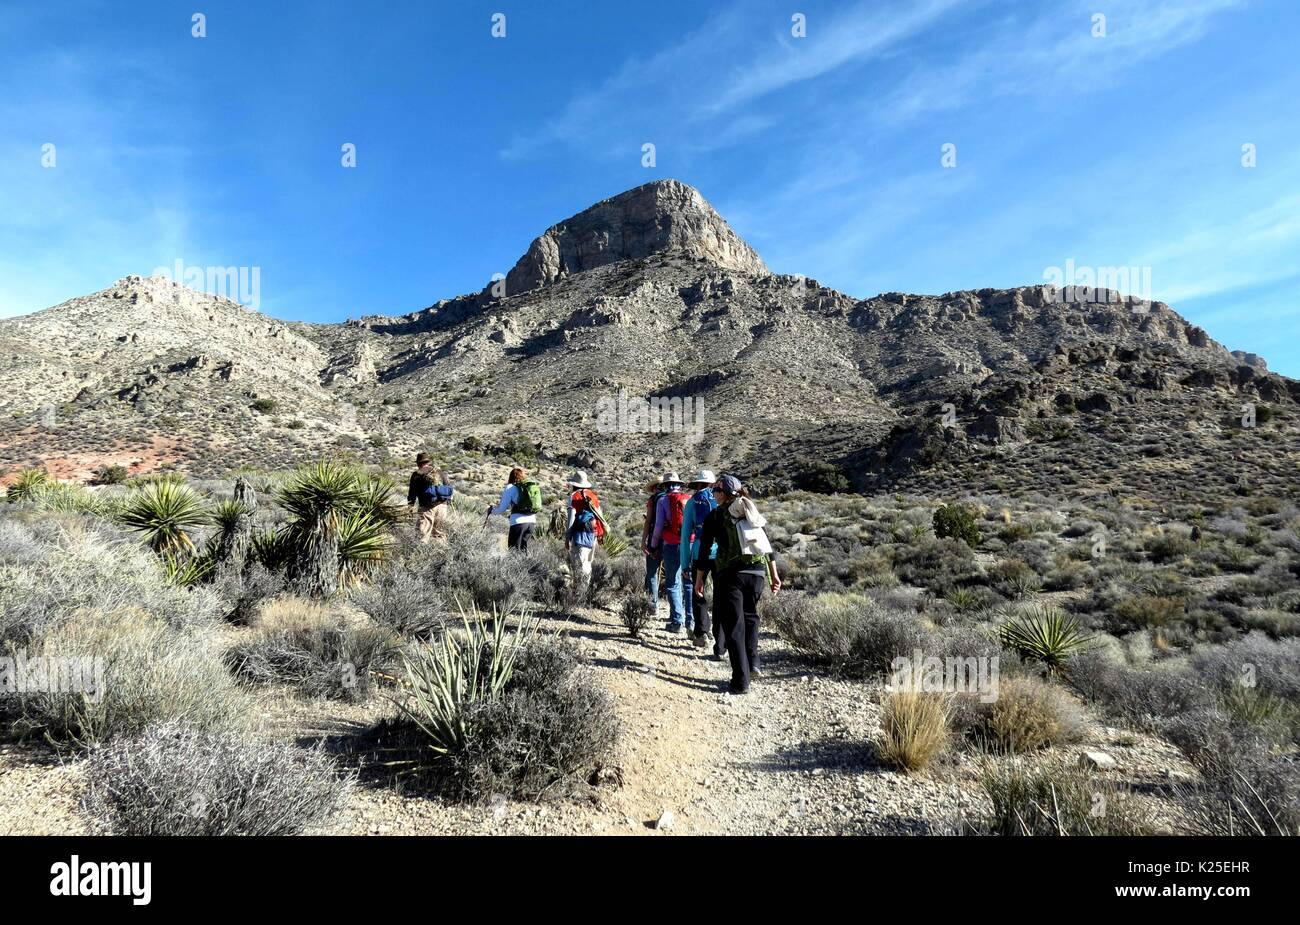 Hikers follow the Turtlehead Peak Trail to Turtlehead Mountain at the Red Rocks Canyon National Conservation Area January 5, 2015 near Las Vegas, Nevada. - Stock Image